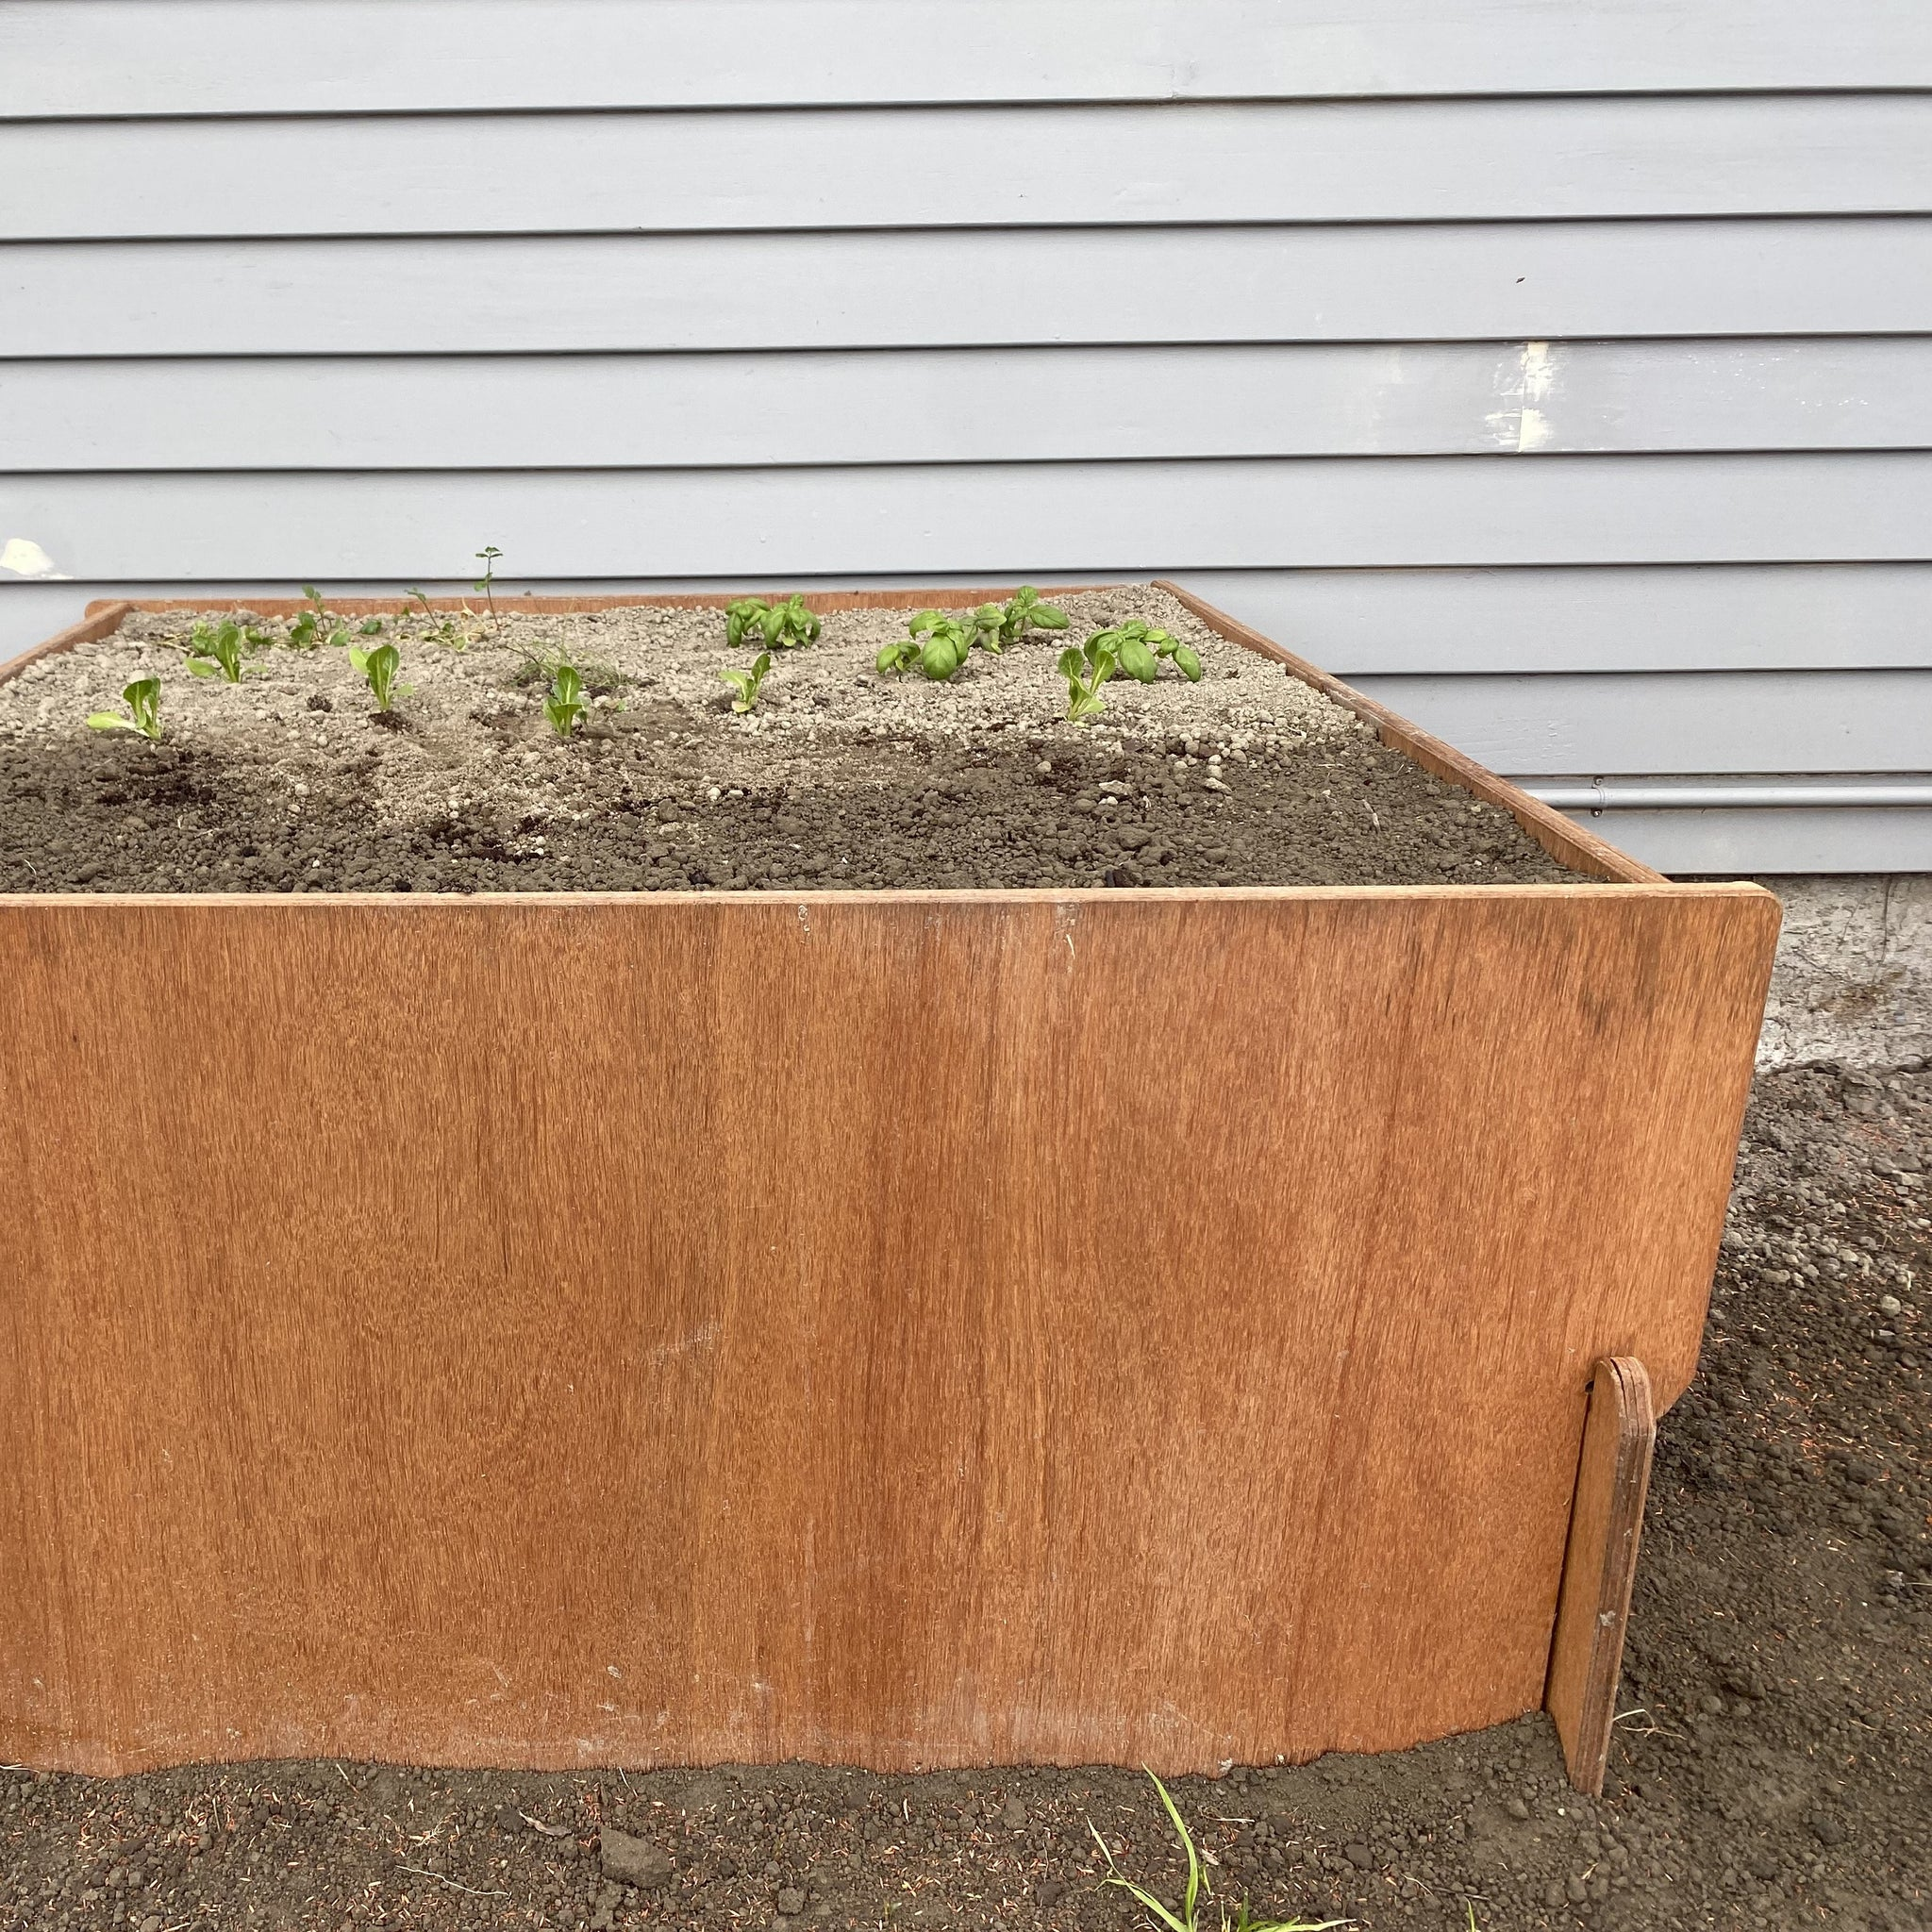 Kitset Planter Box Tall - 560mm